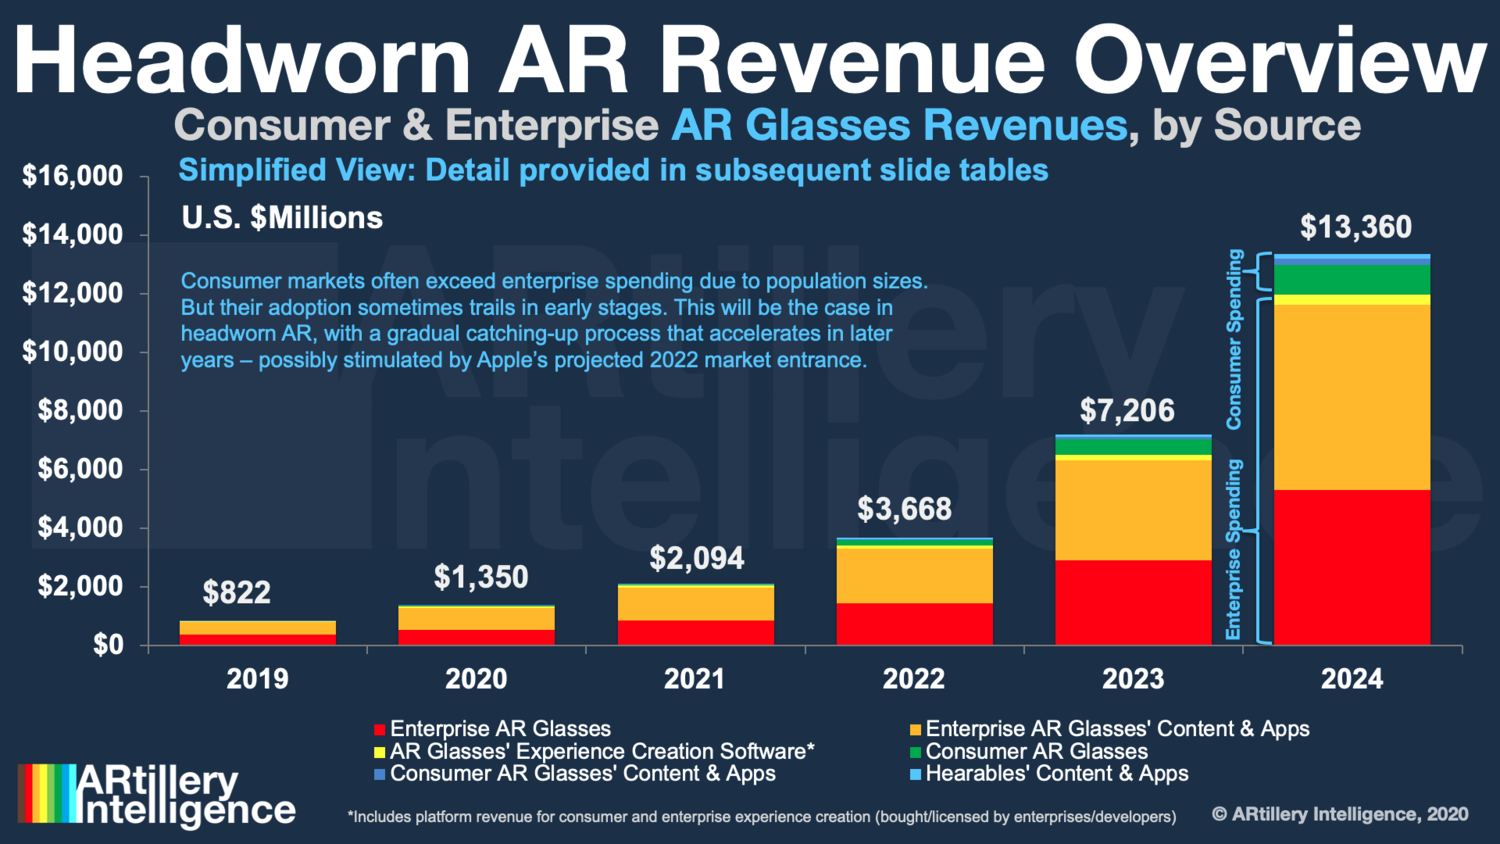 1 Headworn AR Revenue Overview.png